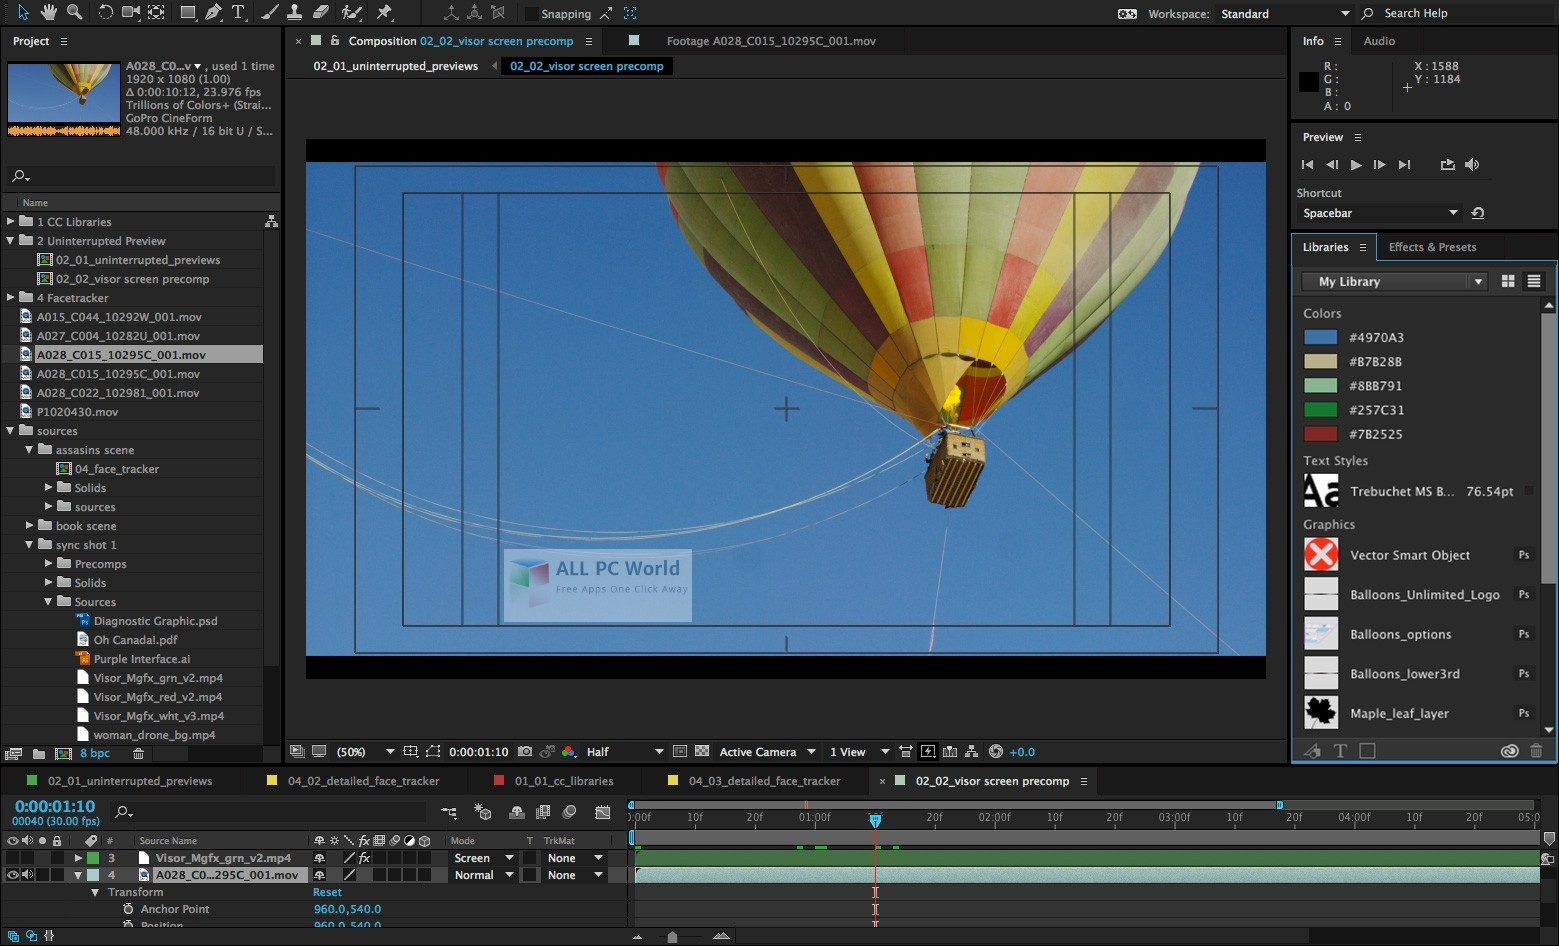 adobe after effects cc 2015 free download full version